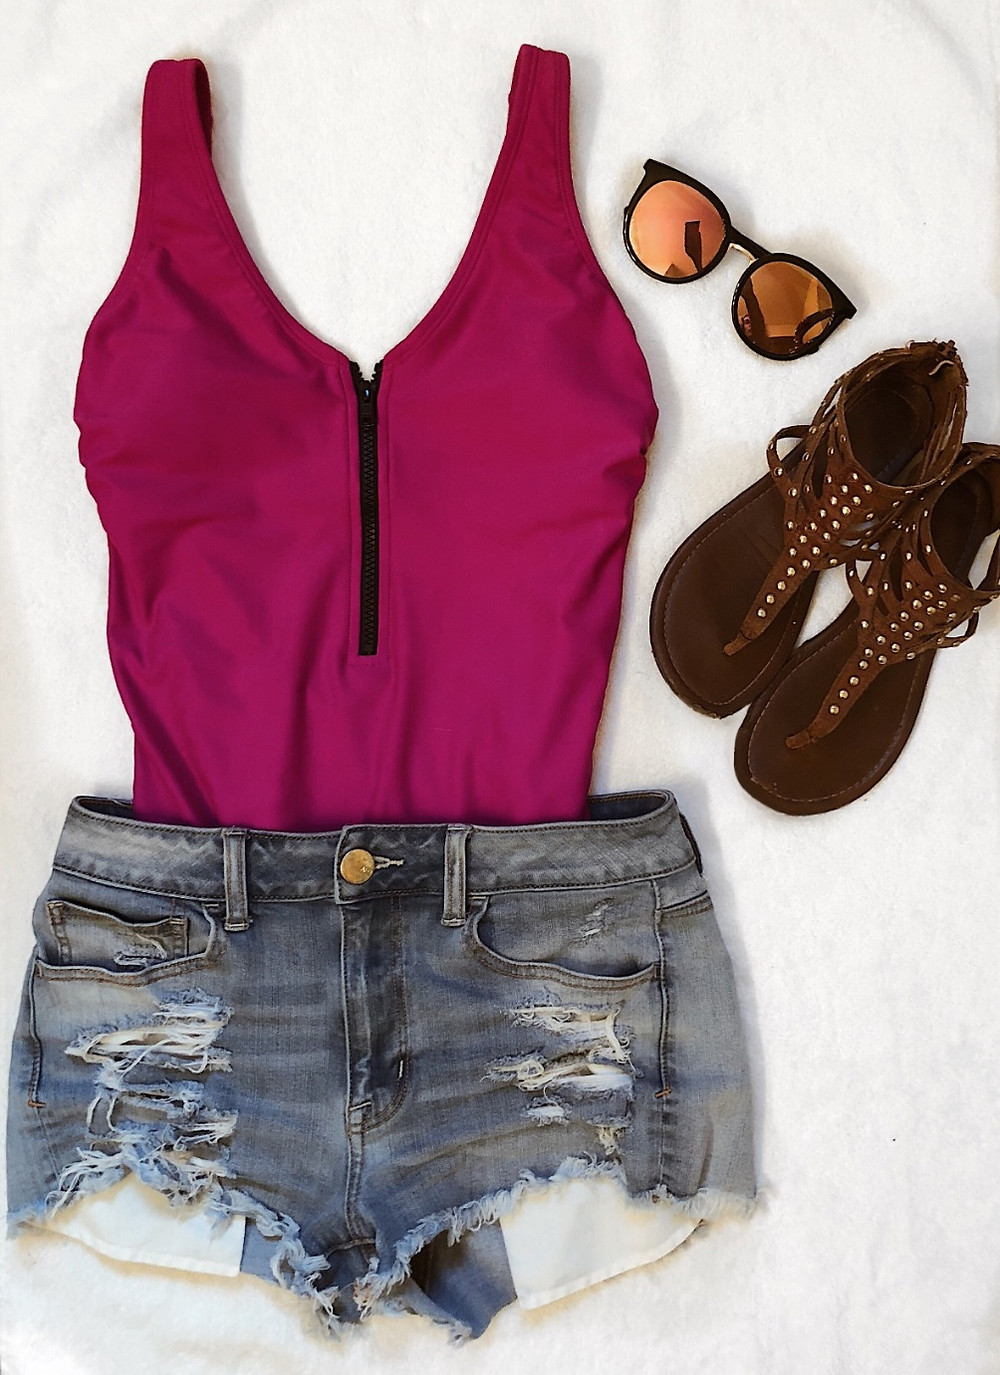 Zip-up One Piece Swimsuit with Jean Shorts, Sandals and Sunglasses